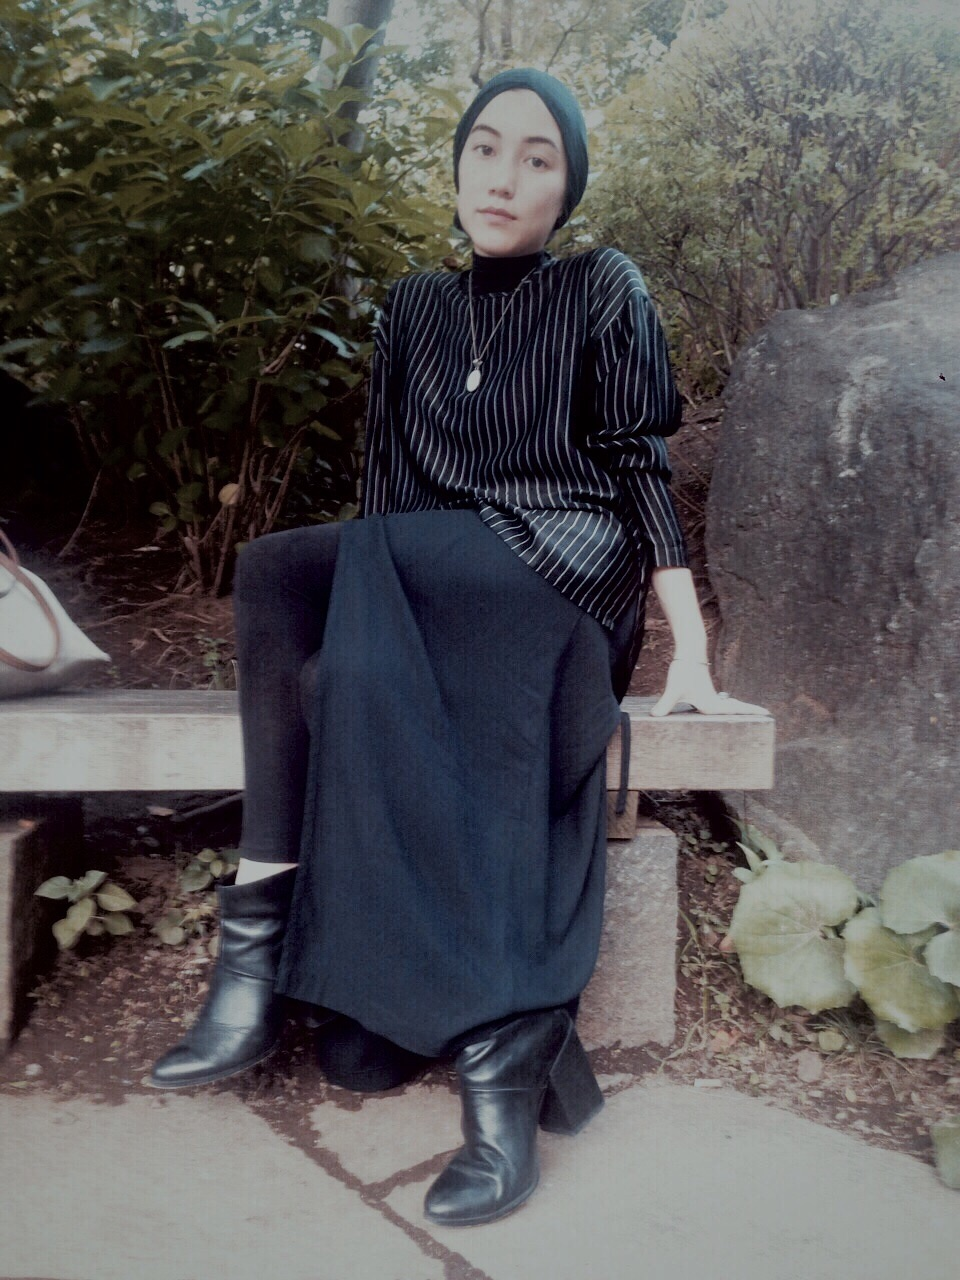 UNIQLO x Hana Tajima wrap skirt and headscarf